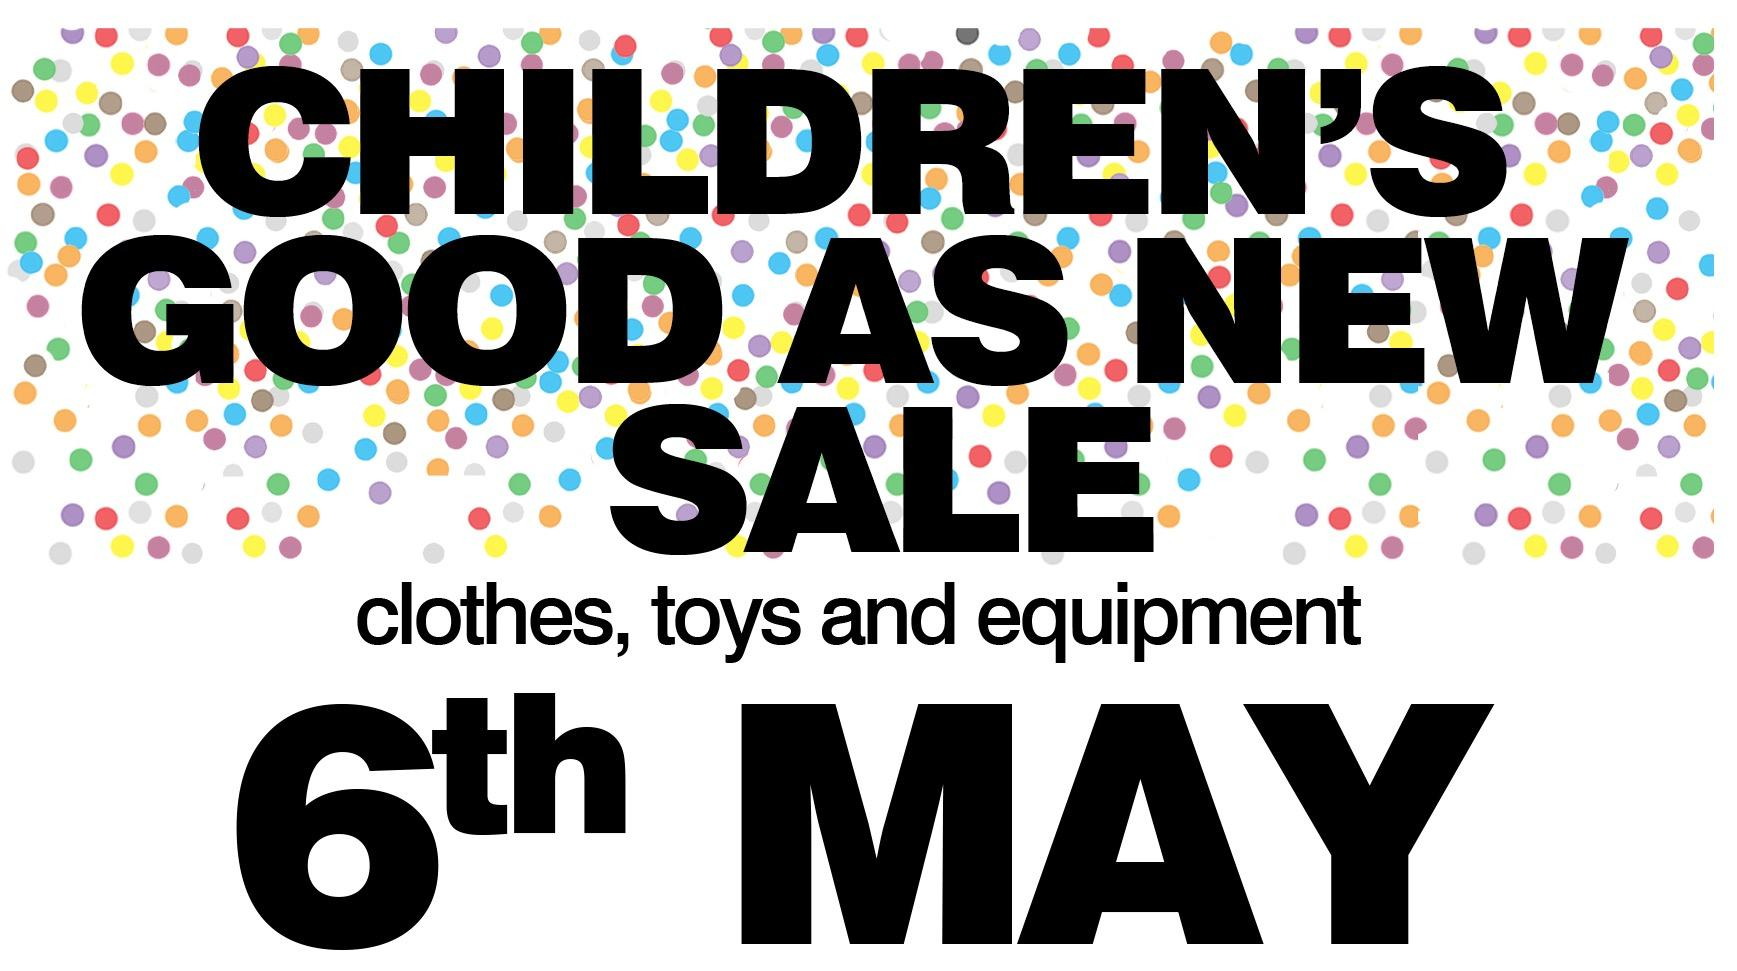 Children's Good As New Sale